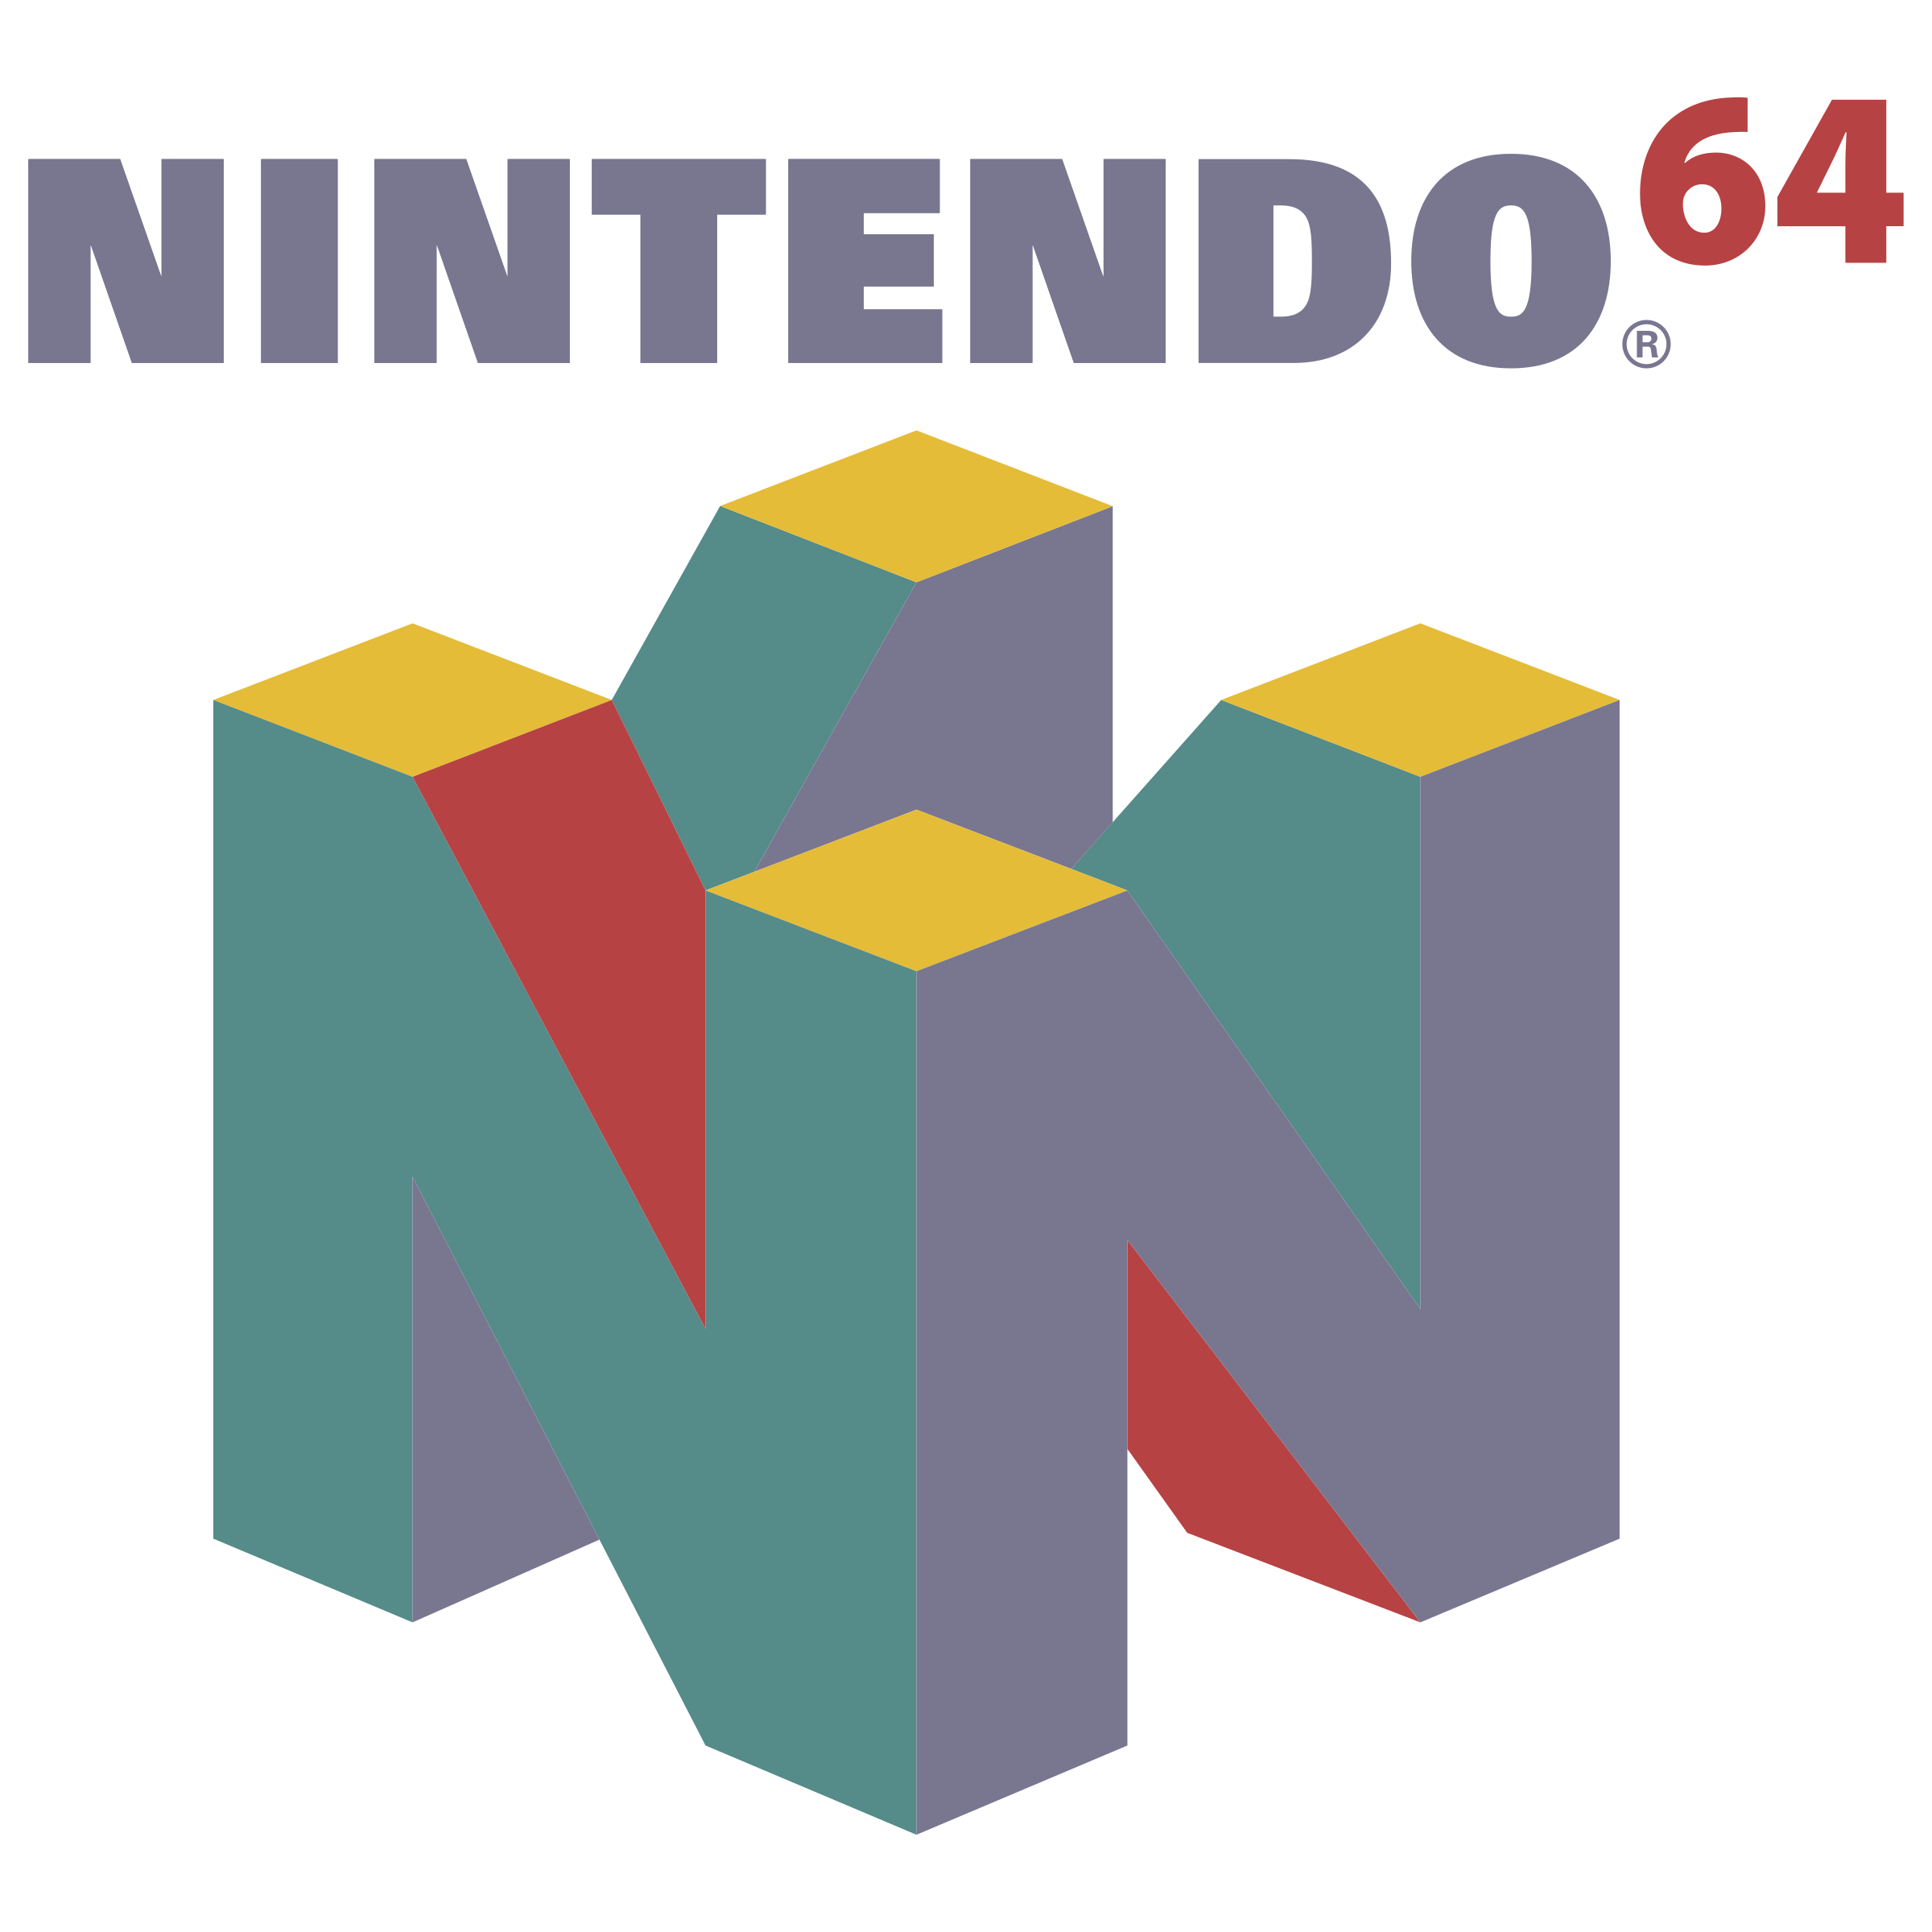 Nintendo 64 logo png. Transparent svg vector freebie